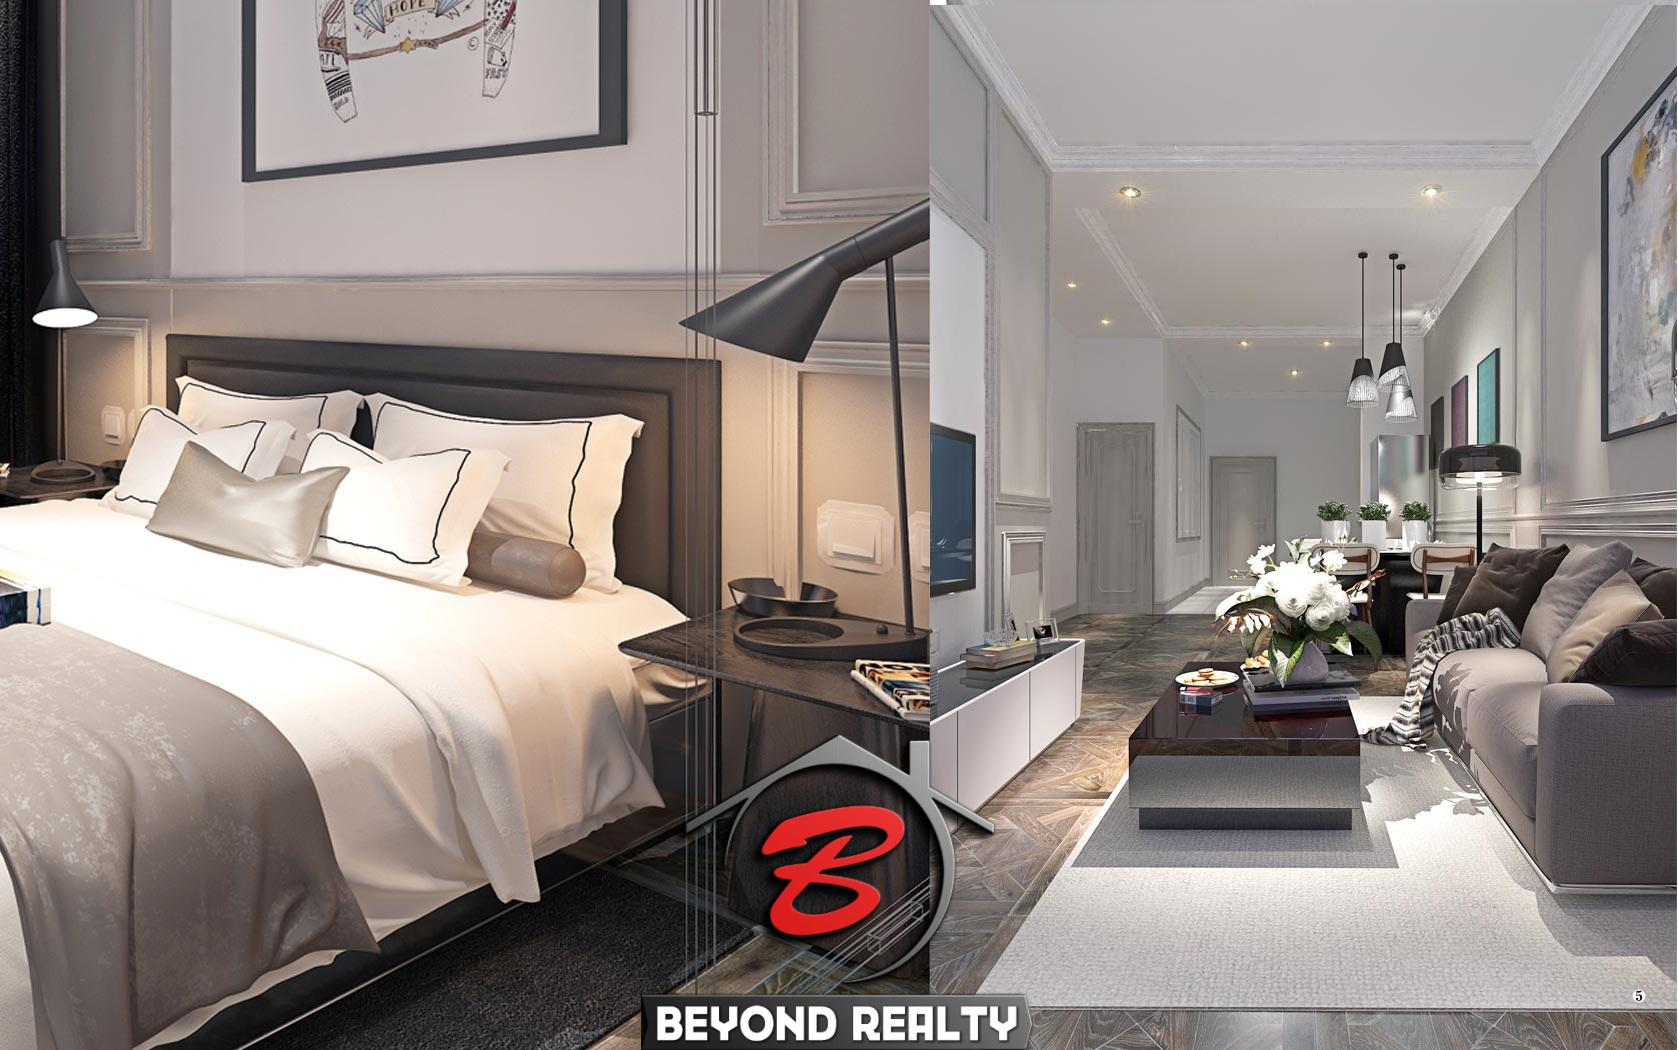 a bedroom and the living room of the 1 bedroom condo unit for sale at SeaGate Suite in Sangkat 3 Sihanoukville